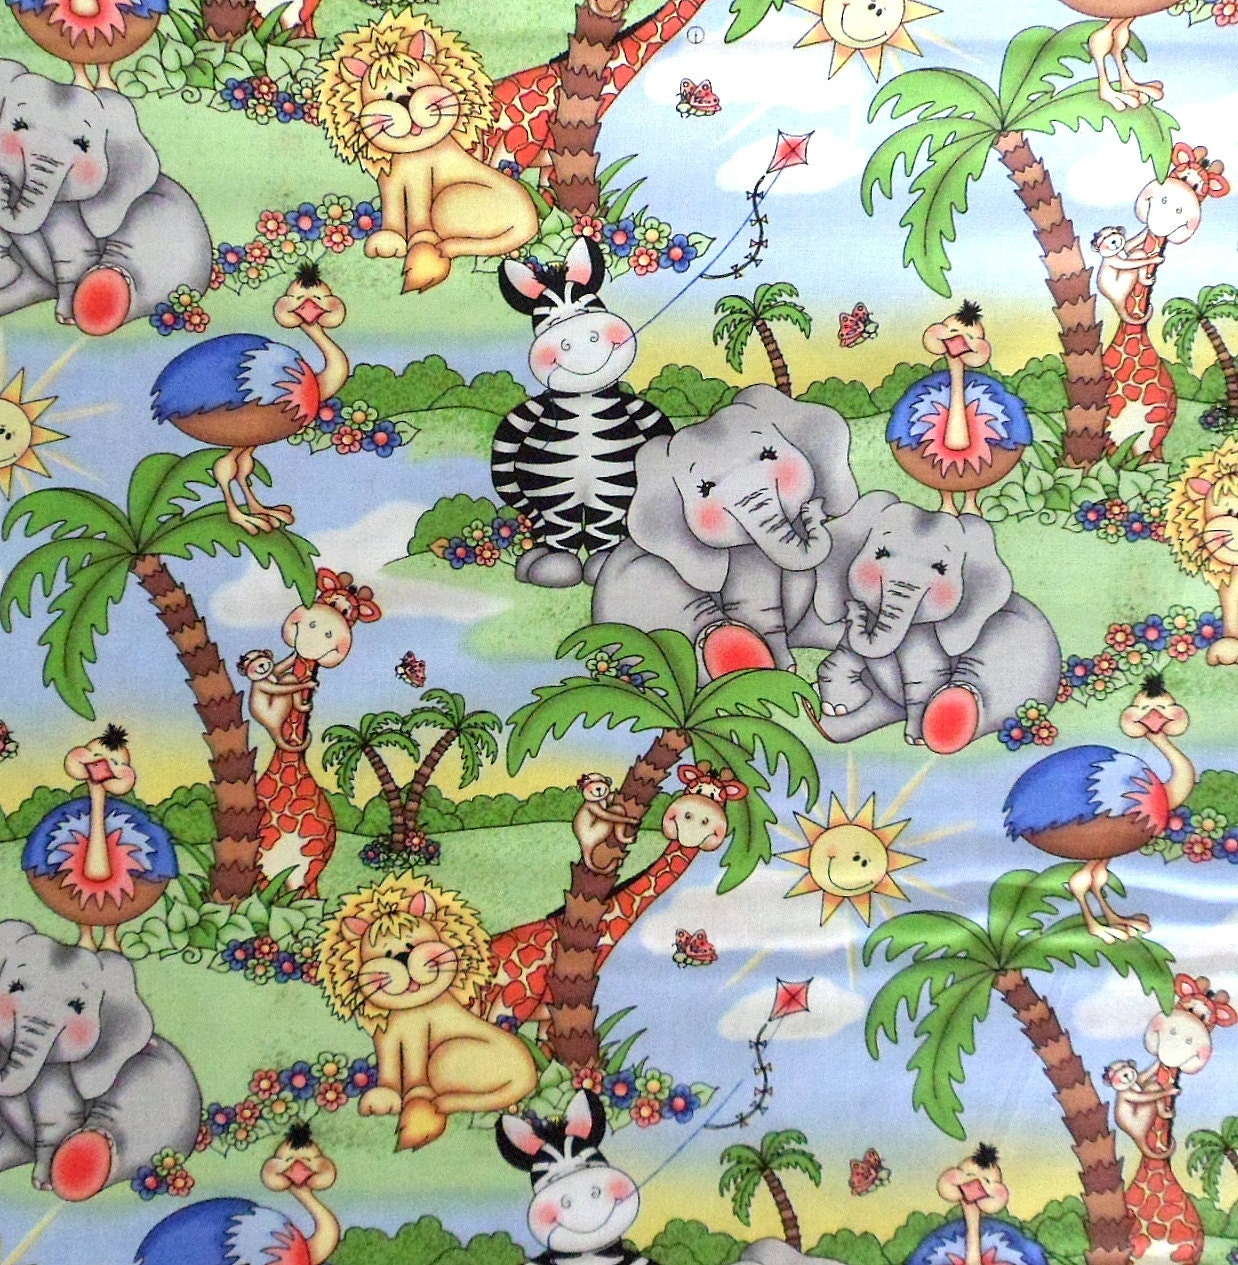 Jungle print fabric bing images for Childrens jungle print fabric